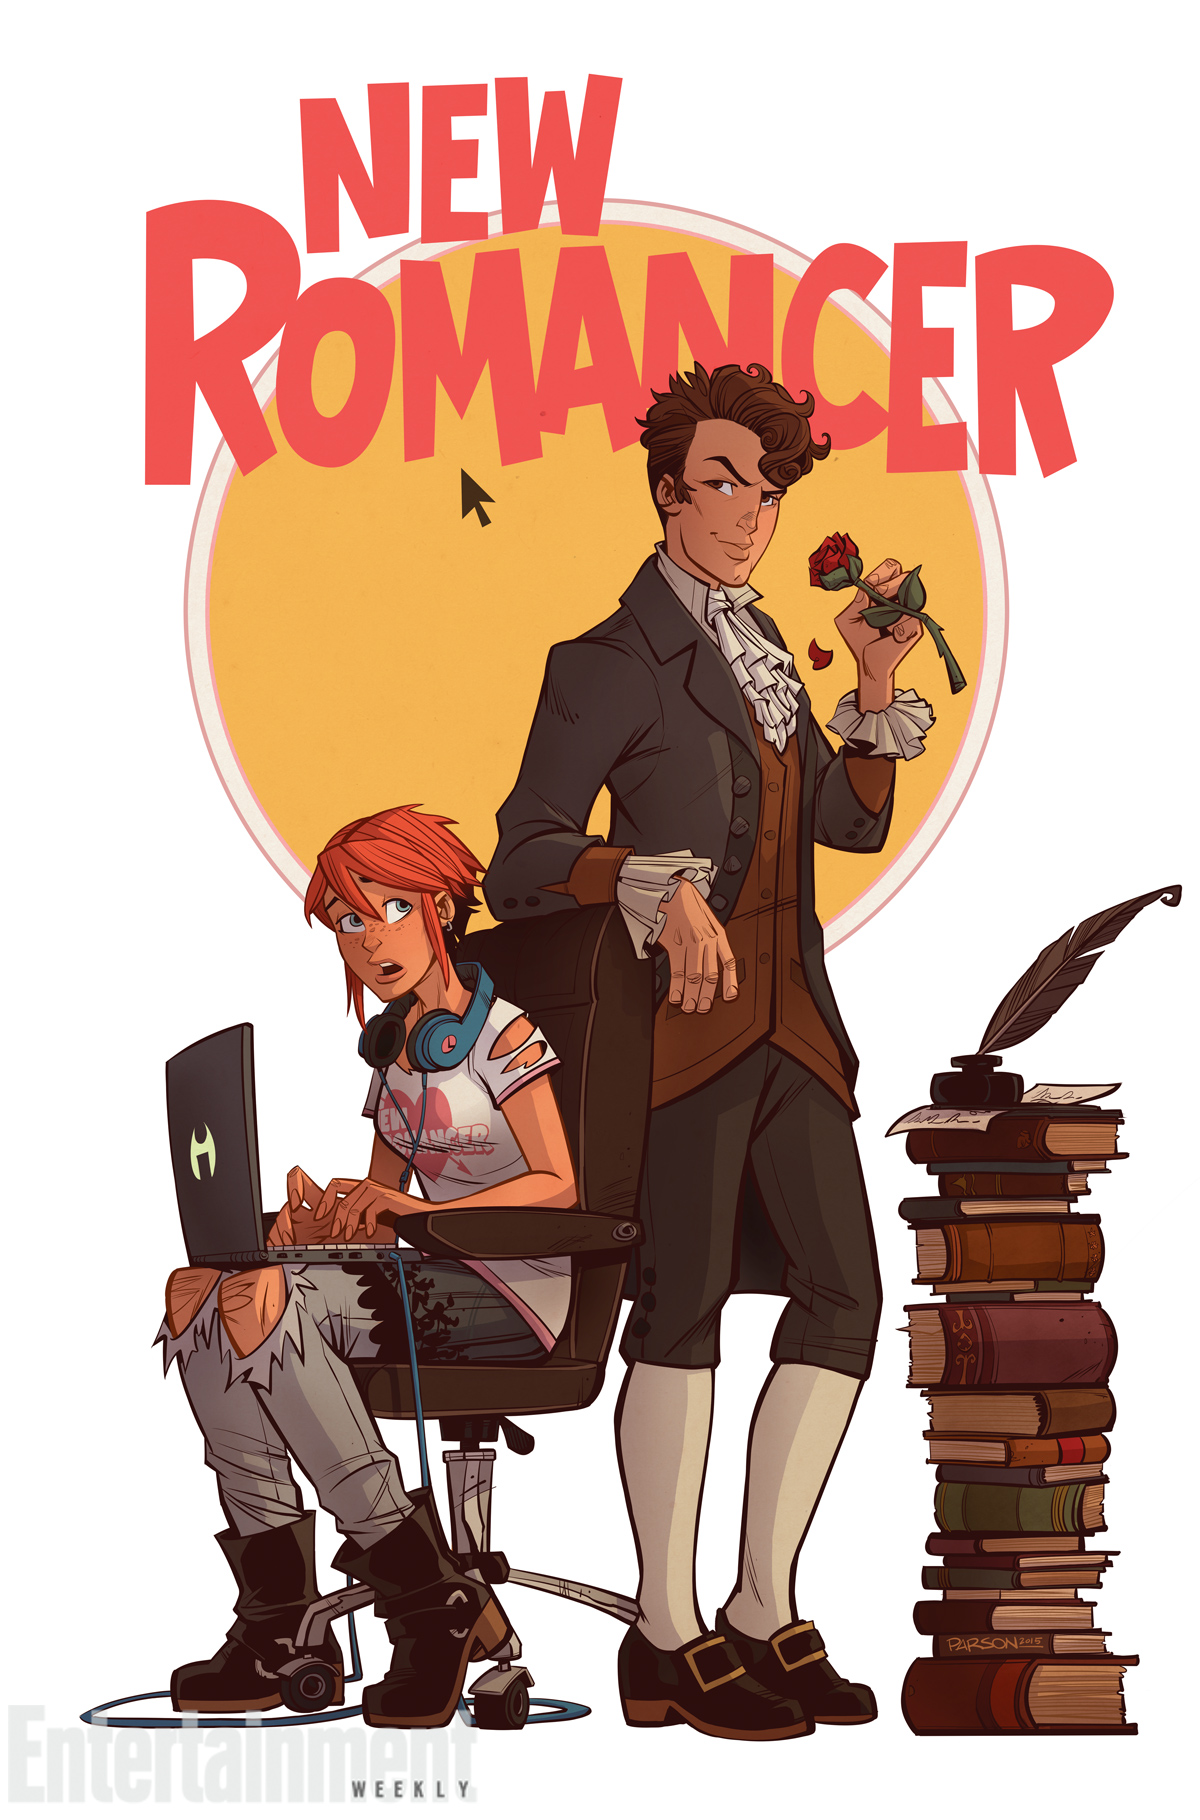 sdcc-comics05-new-romancer-coverfinal